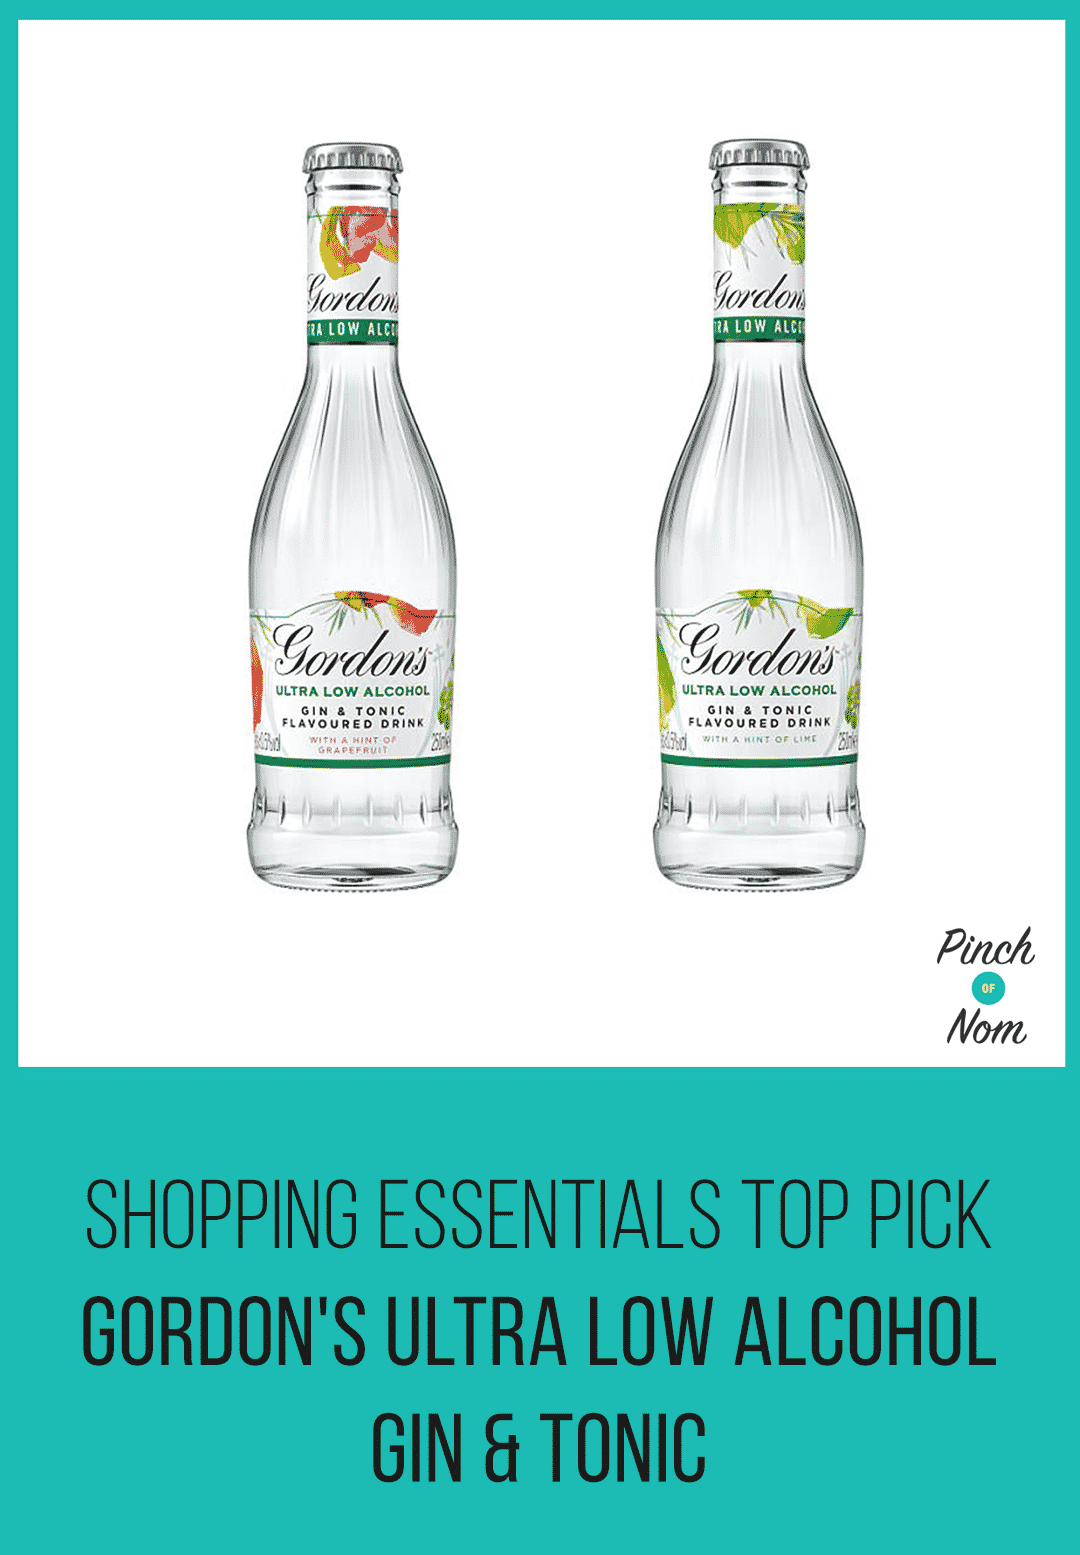 Shopping Essentials Top Pick – Gordon's Ultra Low Alcohol Gin & Tonic | Slimming World